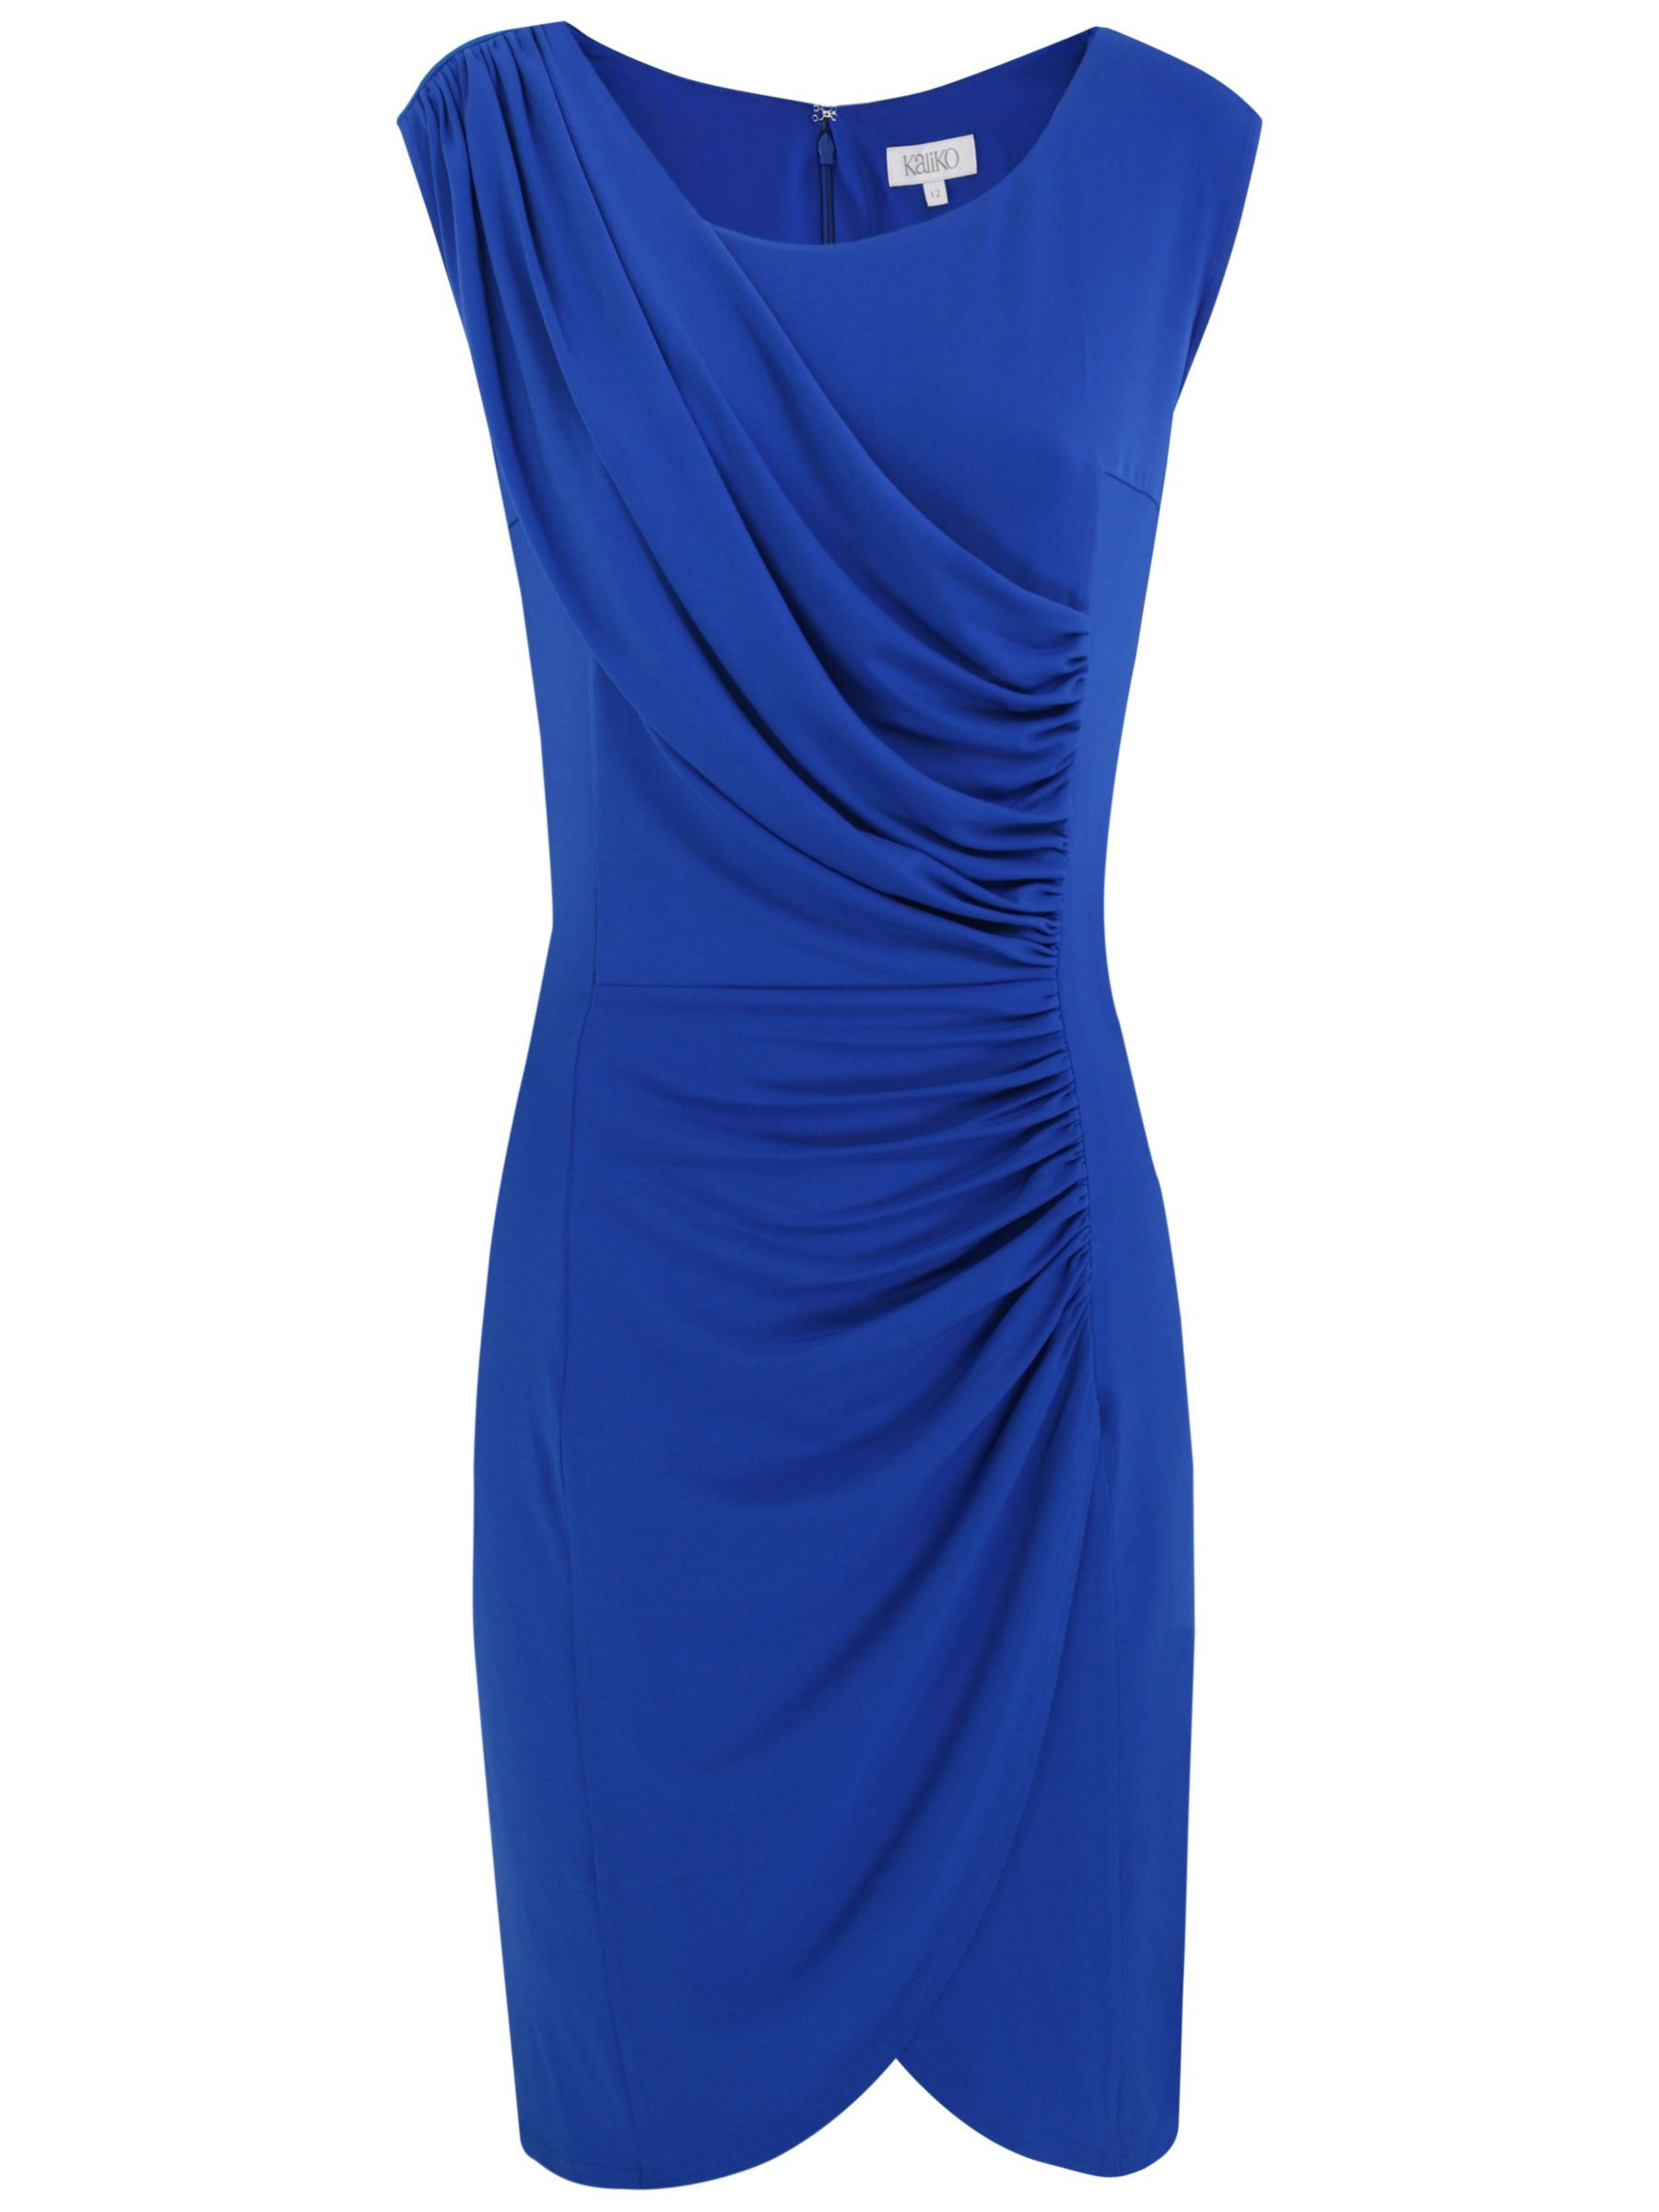 Kaliko Ruched Panel Dress, Bright Blue